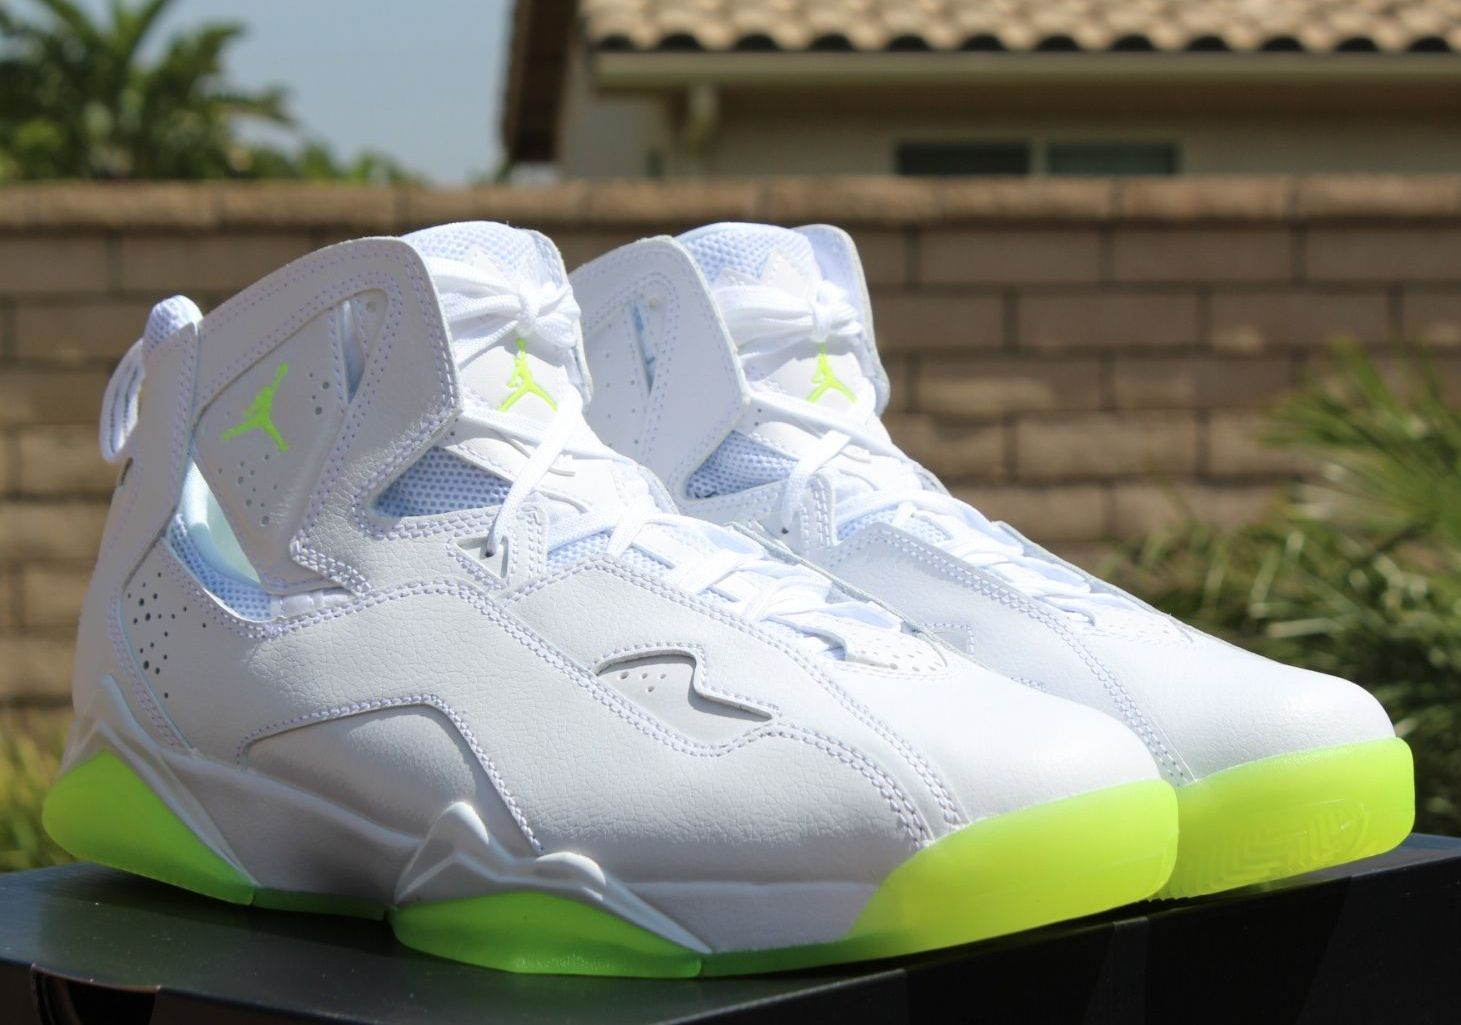 huge discount 3afed 753c2 Jordan True Flight- White   Volt Ice